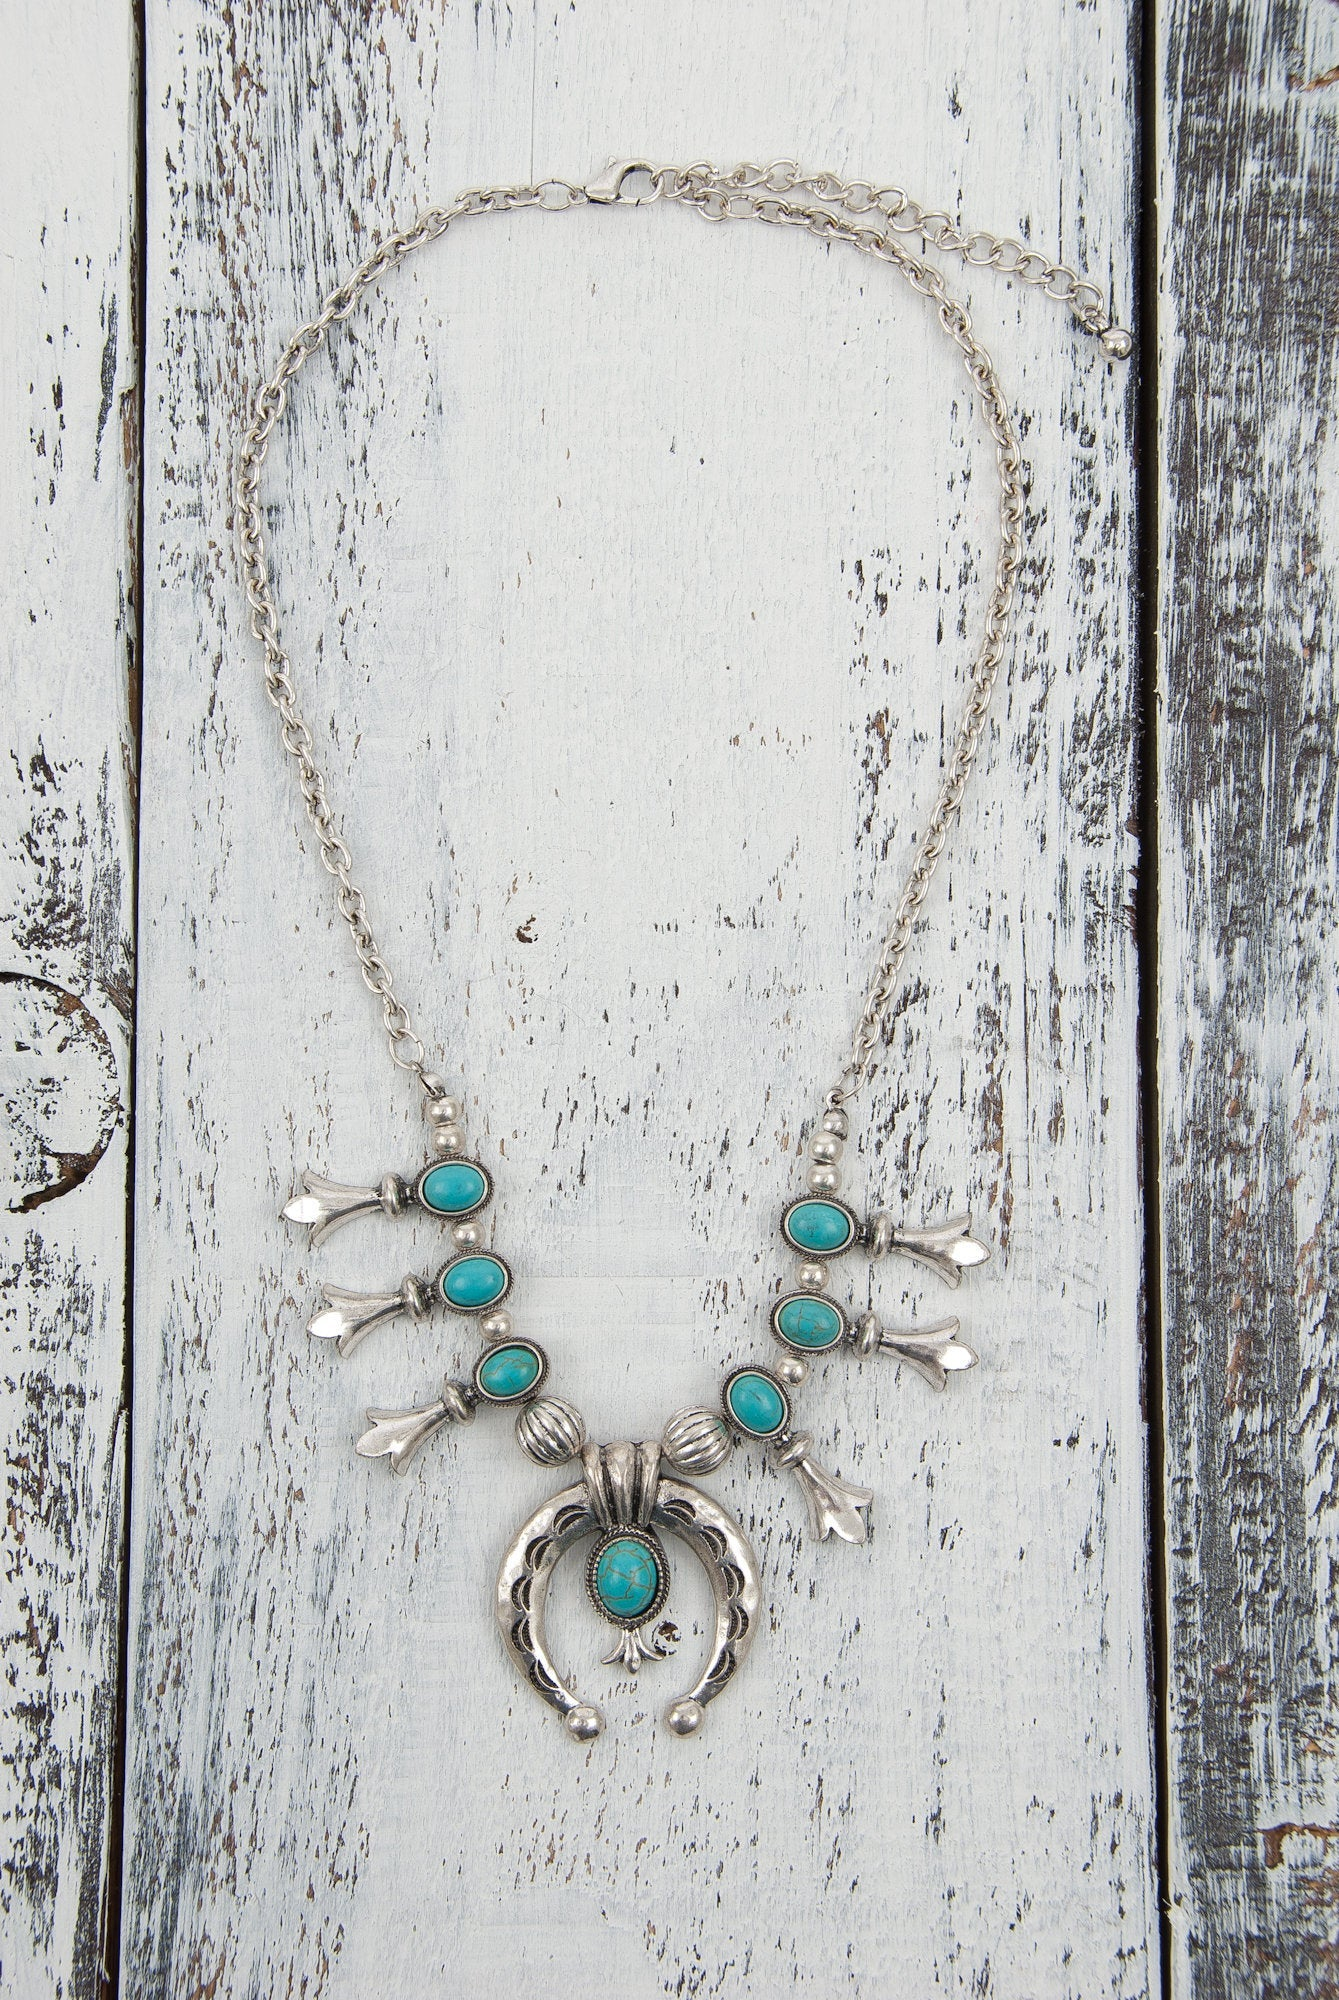 Handmade Navajo Inspired Southwestern Small Turquoise Color Beads Squash Blossom Necklace Western Jewelry             Handmade Navajo Inspired Southwestern Small Turquoise Color Beads Squash Blossom Necklace Western Jewelry